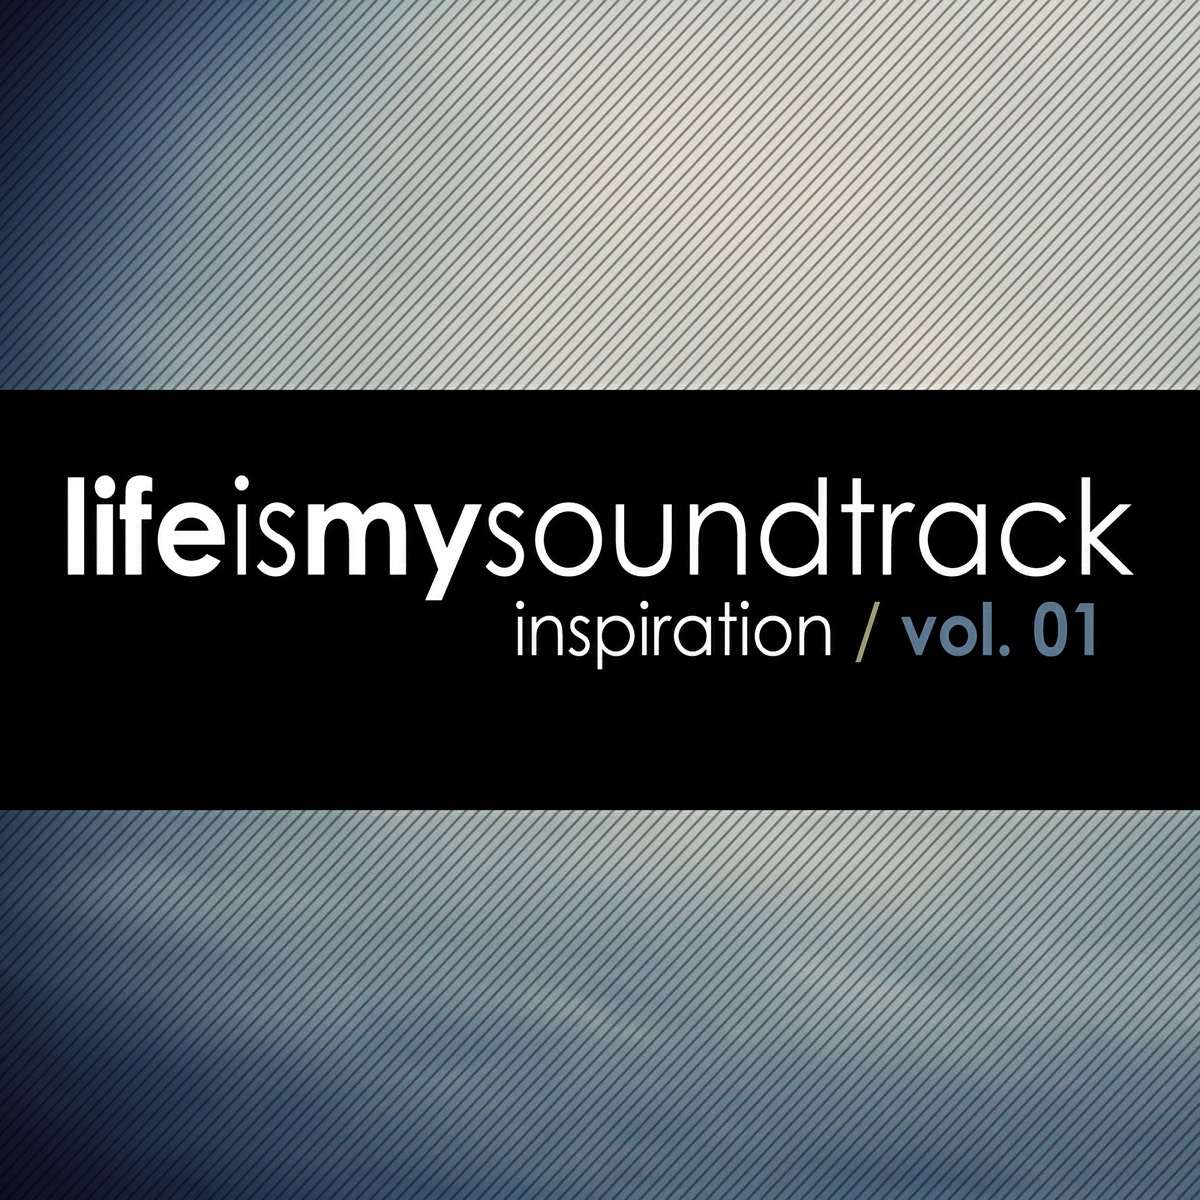 The album Inspiration, Vol 01 by Life Is My Soundtrack - Early concepts of 11 songs that helped inspire the Life Is My Soundtrack series